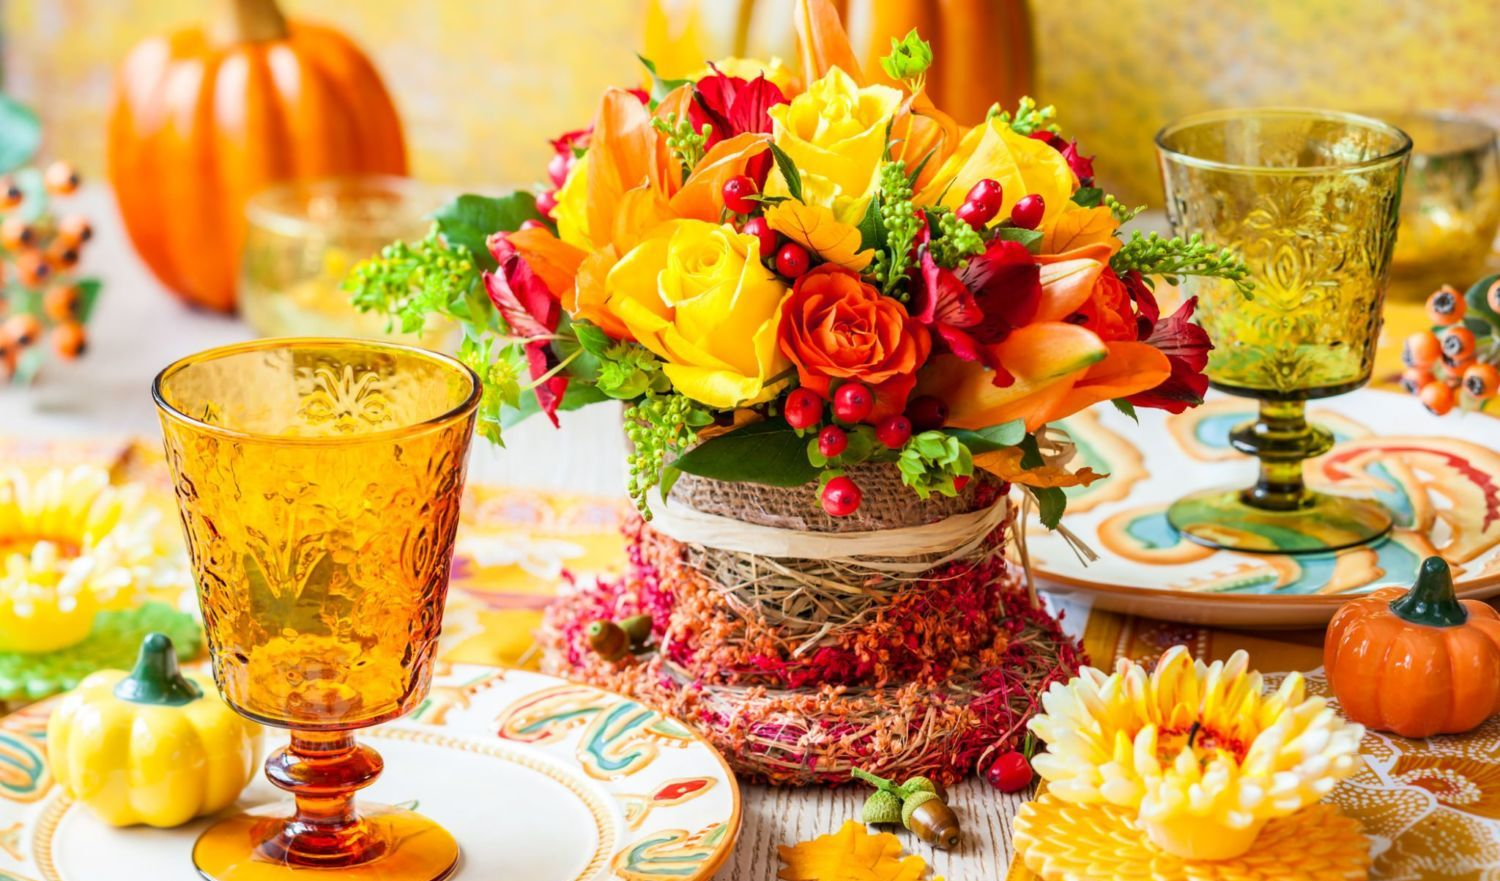 Show Your Gratitude With These Diy Thanksgiving Centerpieces